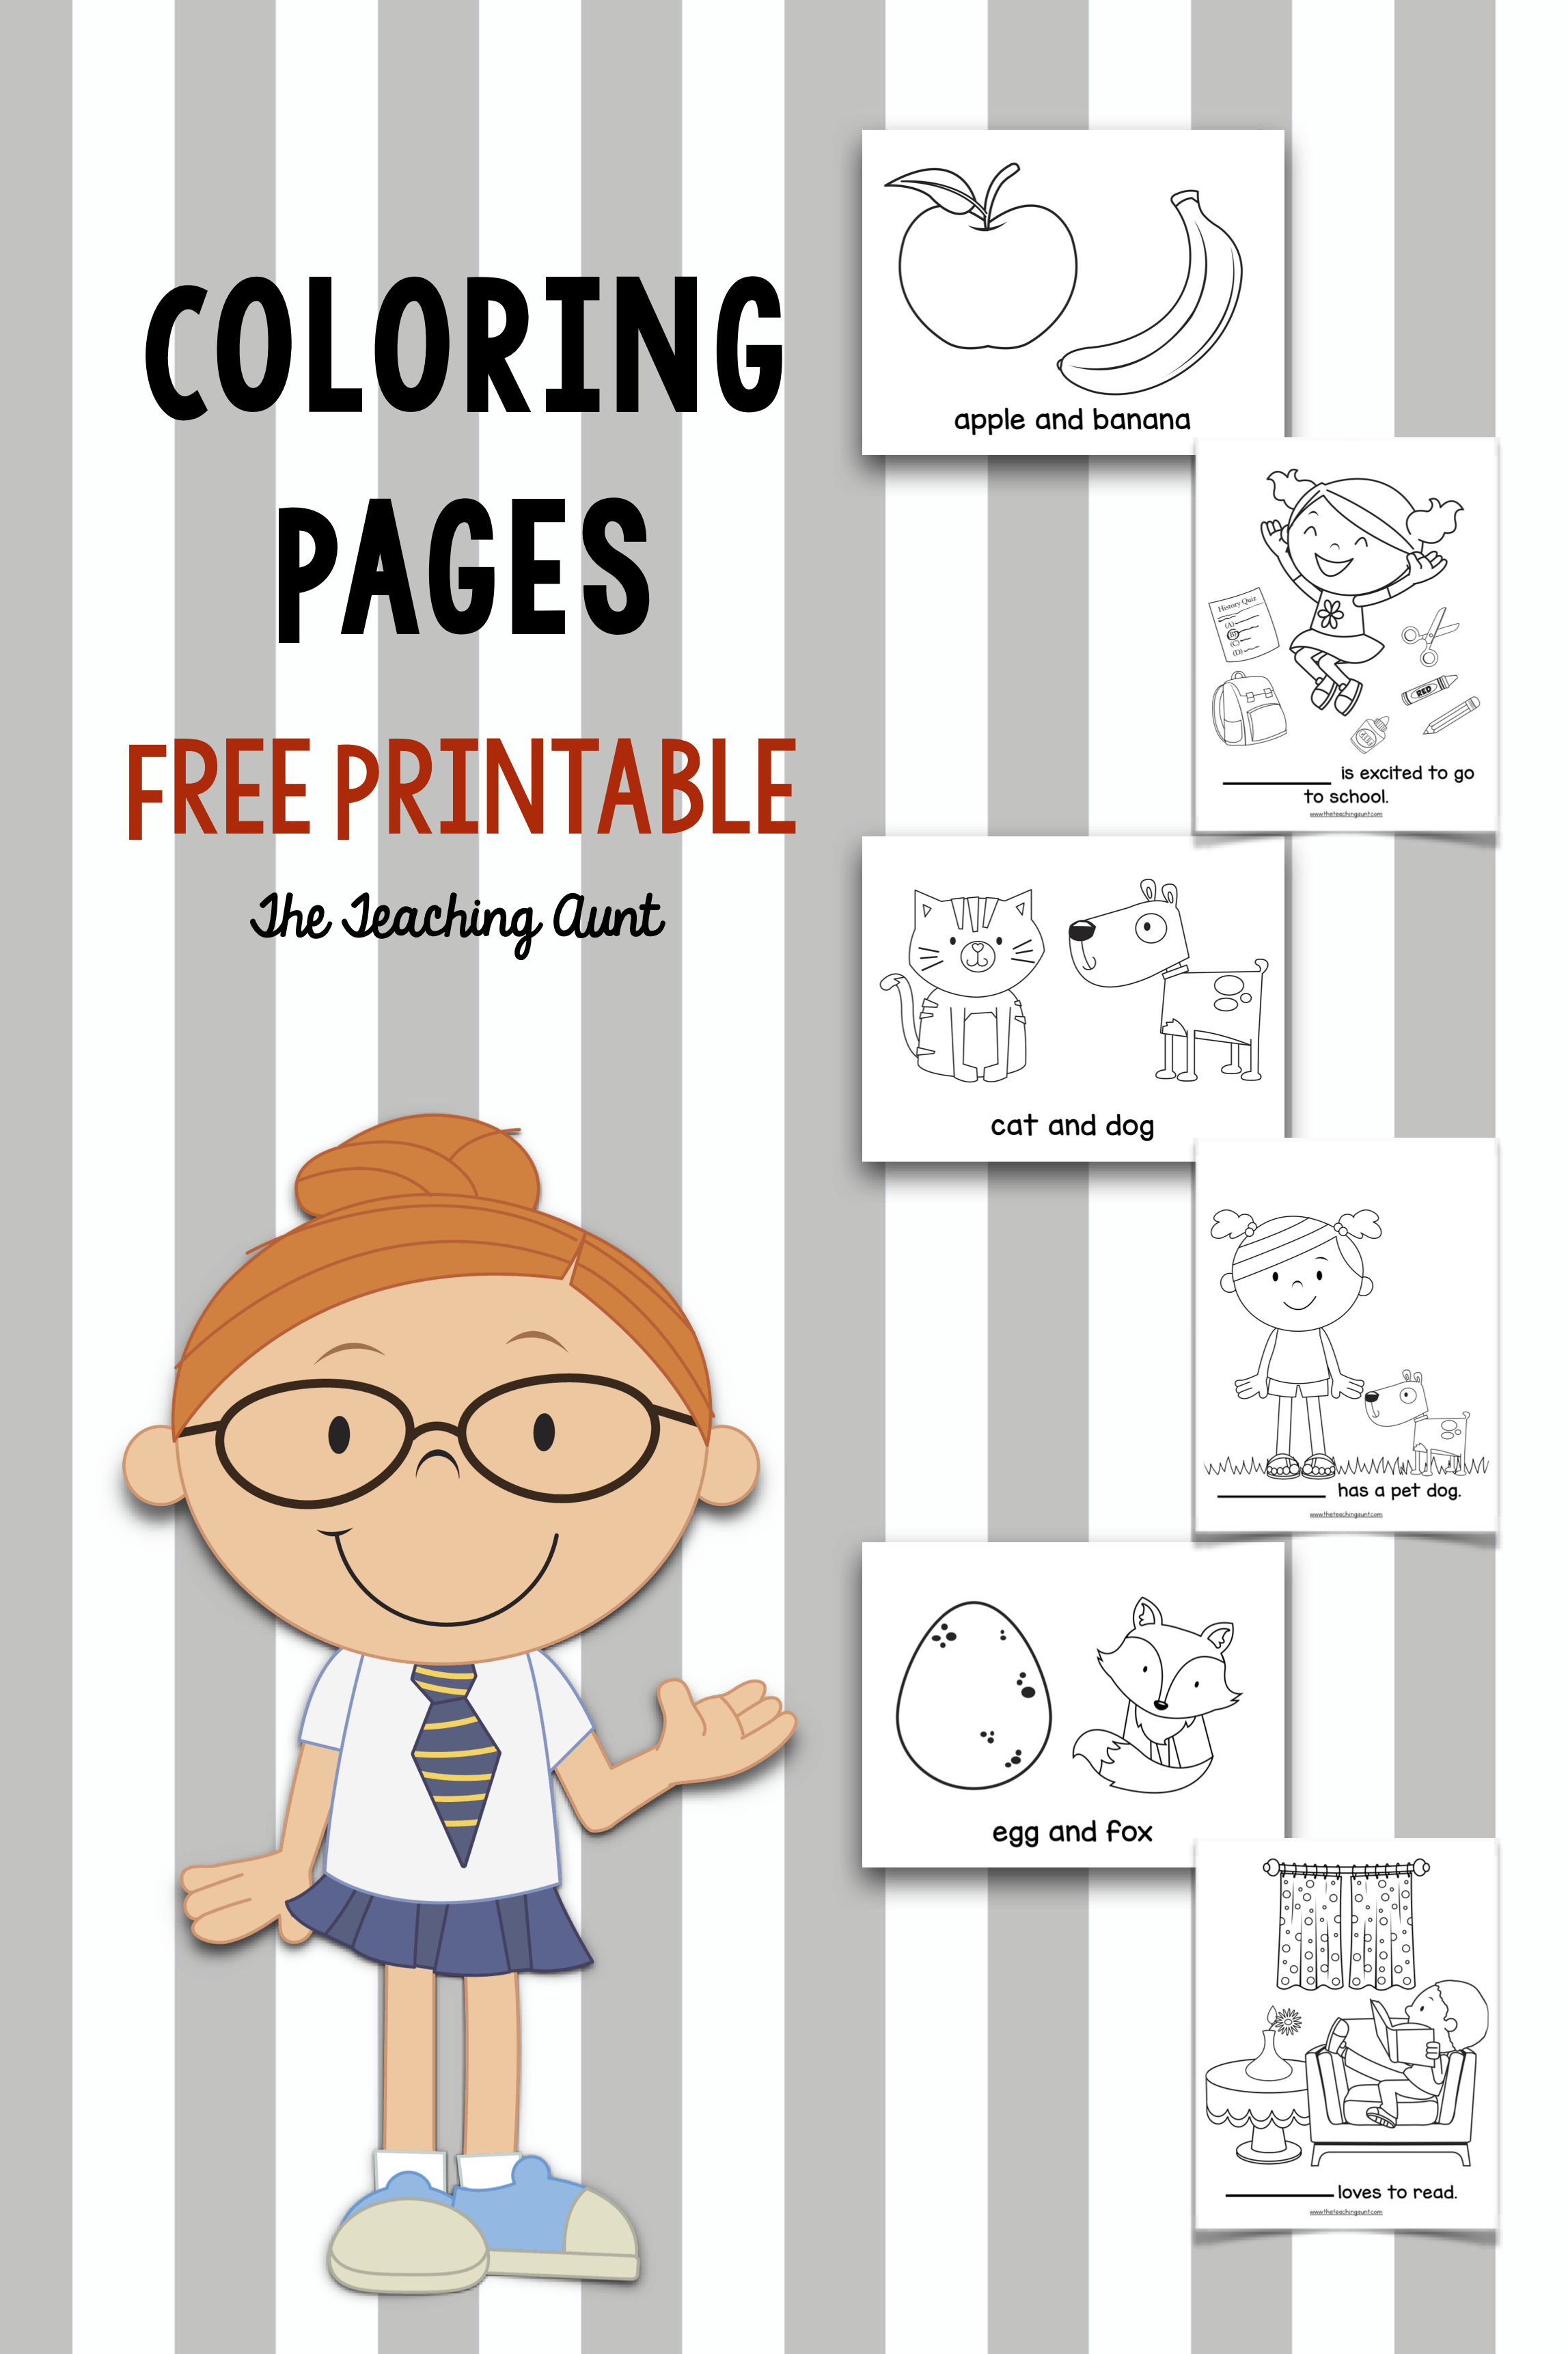 Coloring Pages Free Printable